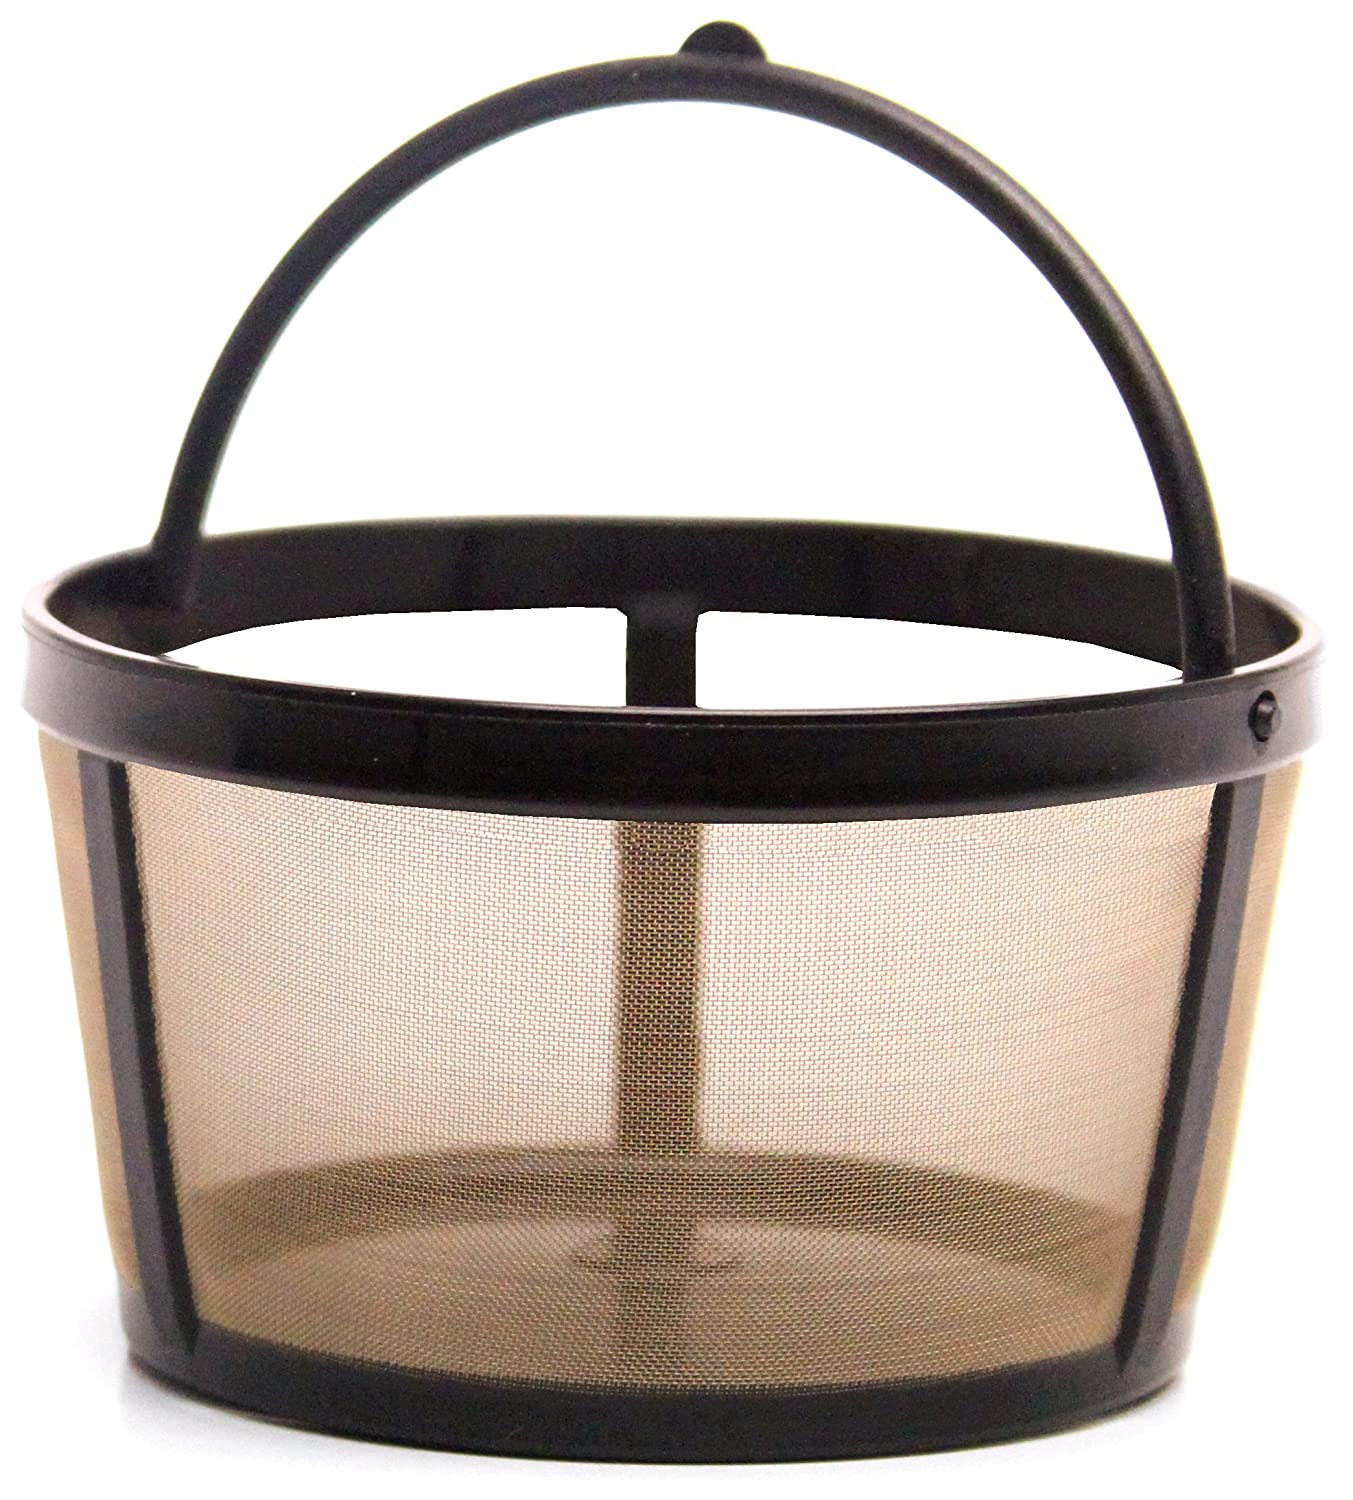 THE ORIGINAL GOLDTONE BRAND Reusable Basket-style 4-8 Cup Coffee Filter with Handle.